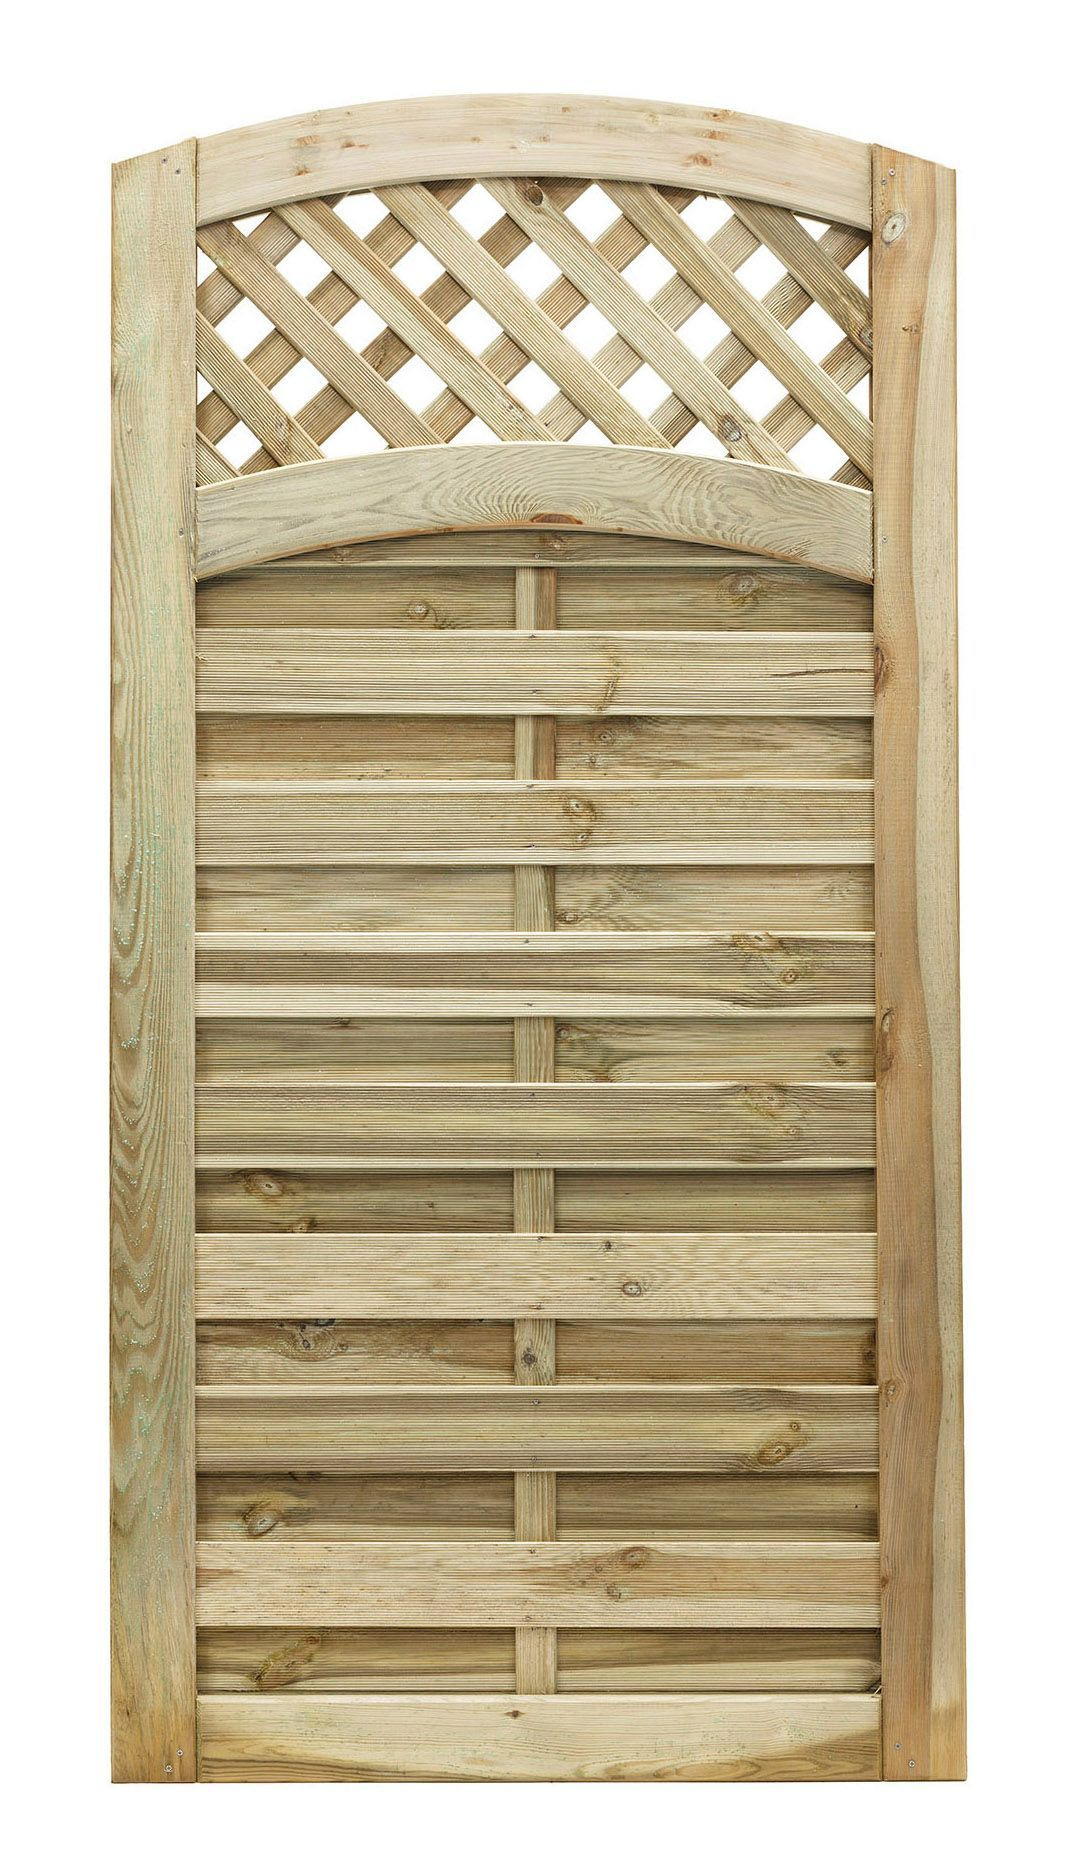 Grange Timber Woodbury Gate H 1 8m W 0 9 M Departments Diy